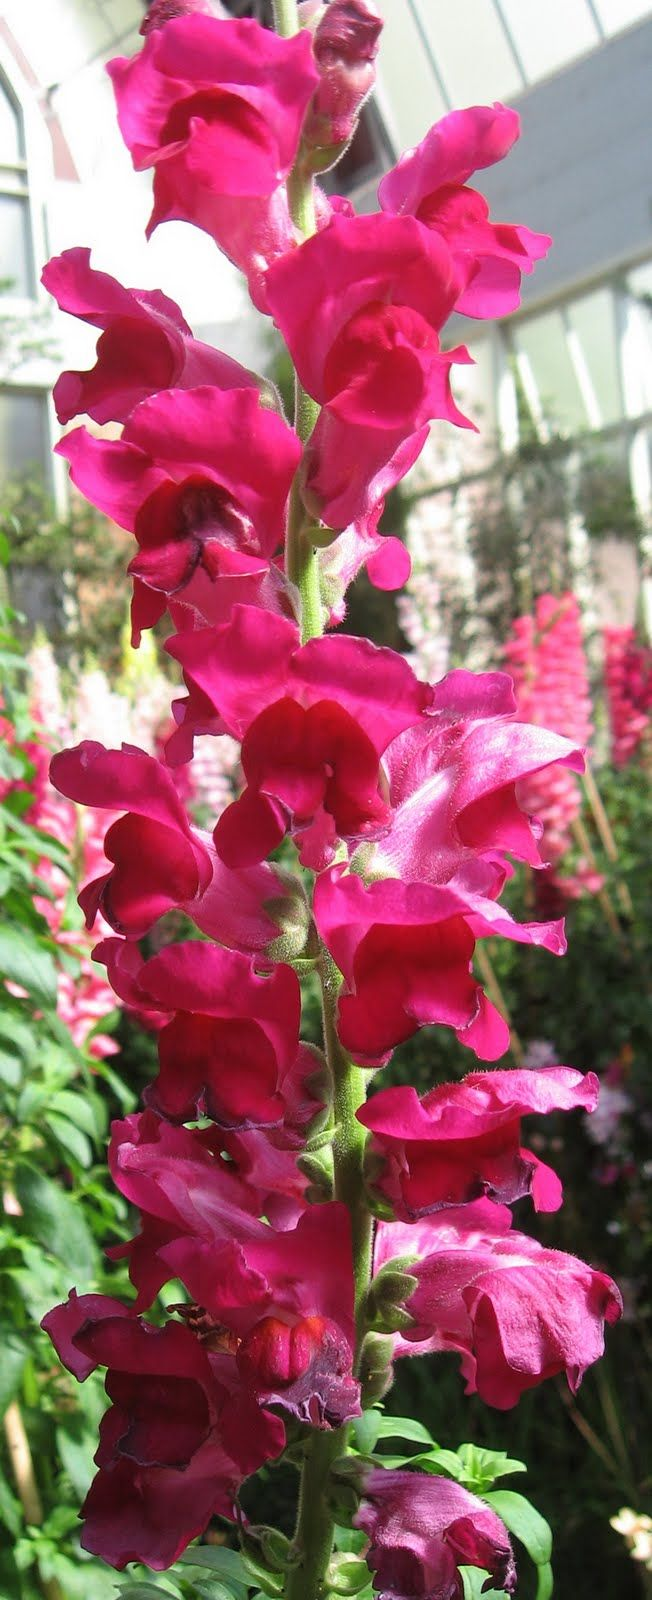 104 best Snap Dragon\'s images by Bianca Stewart on Pinterest ...